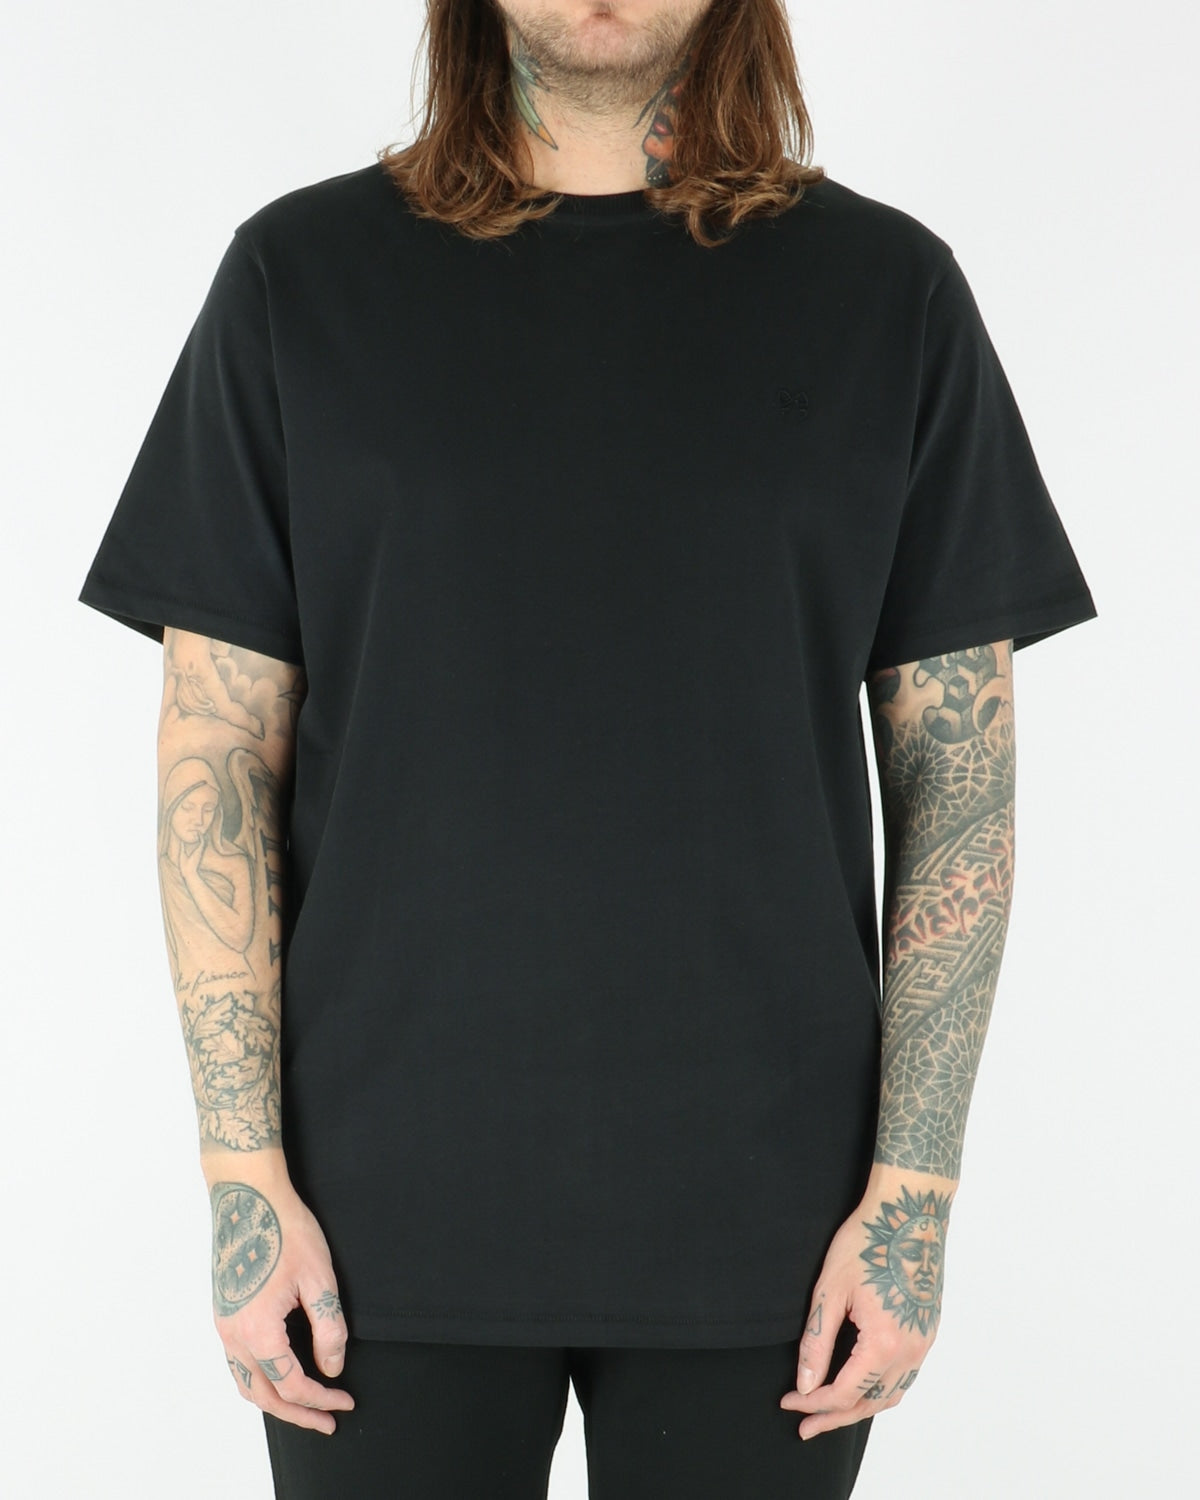 soulland_whatever t-shirt_black_view_1_3